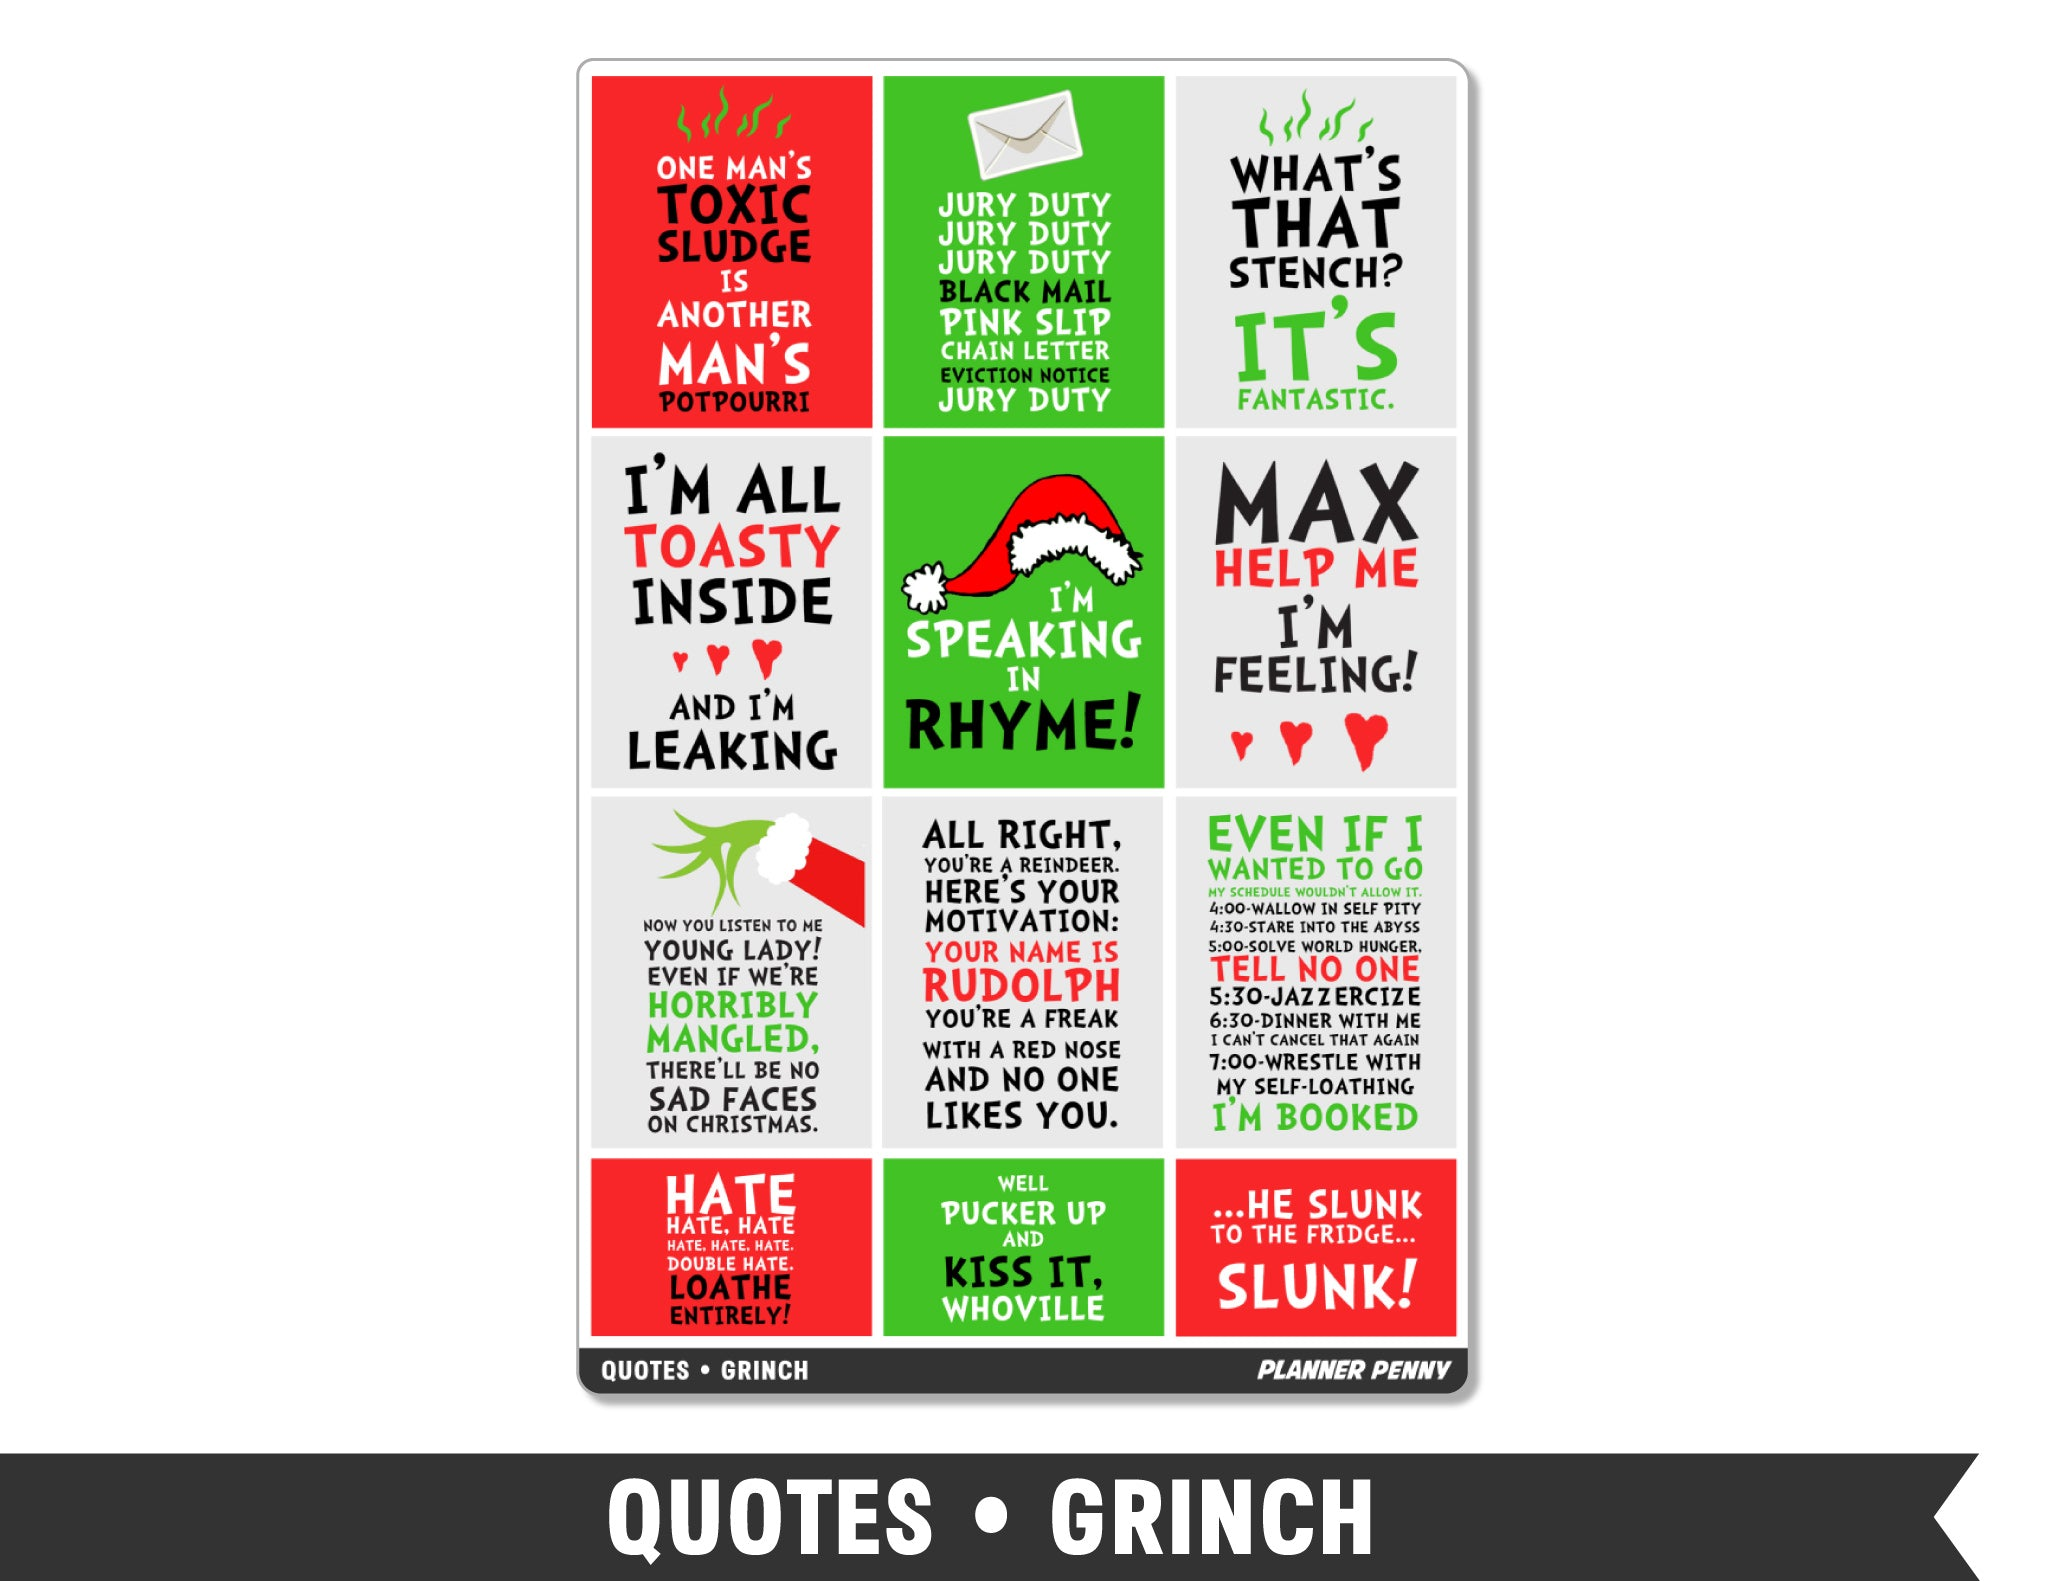 Quotes • Grinch Full Box Planner Stickers - Planner Penny